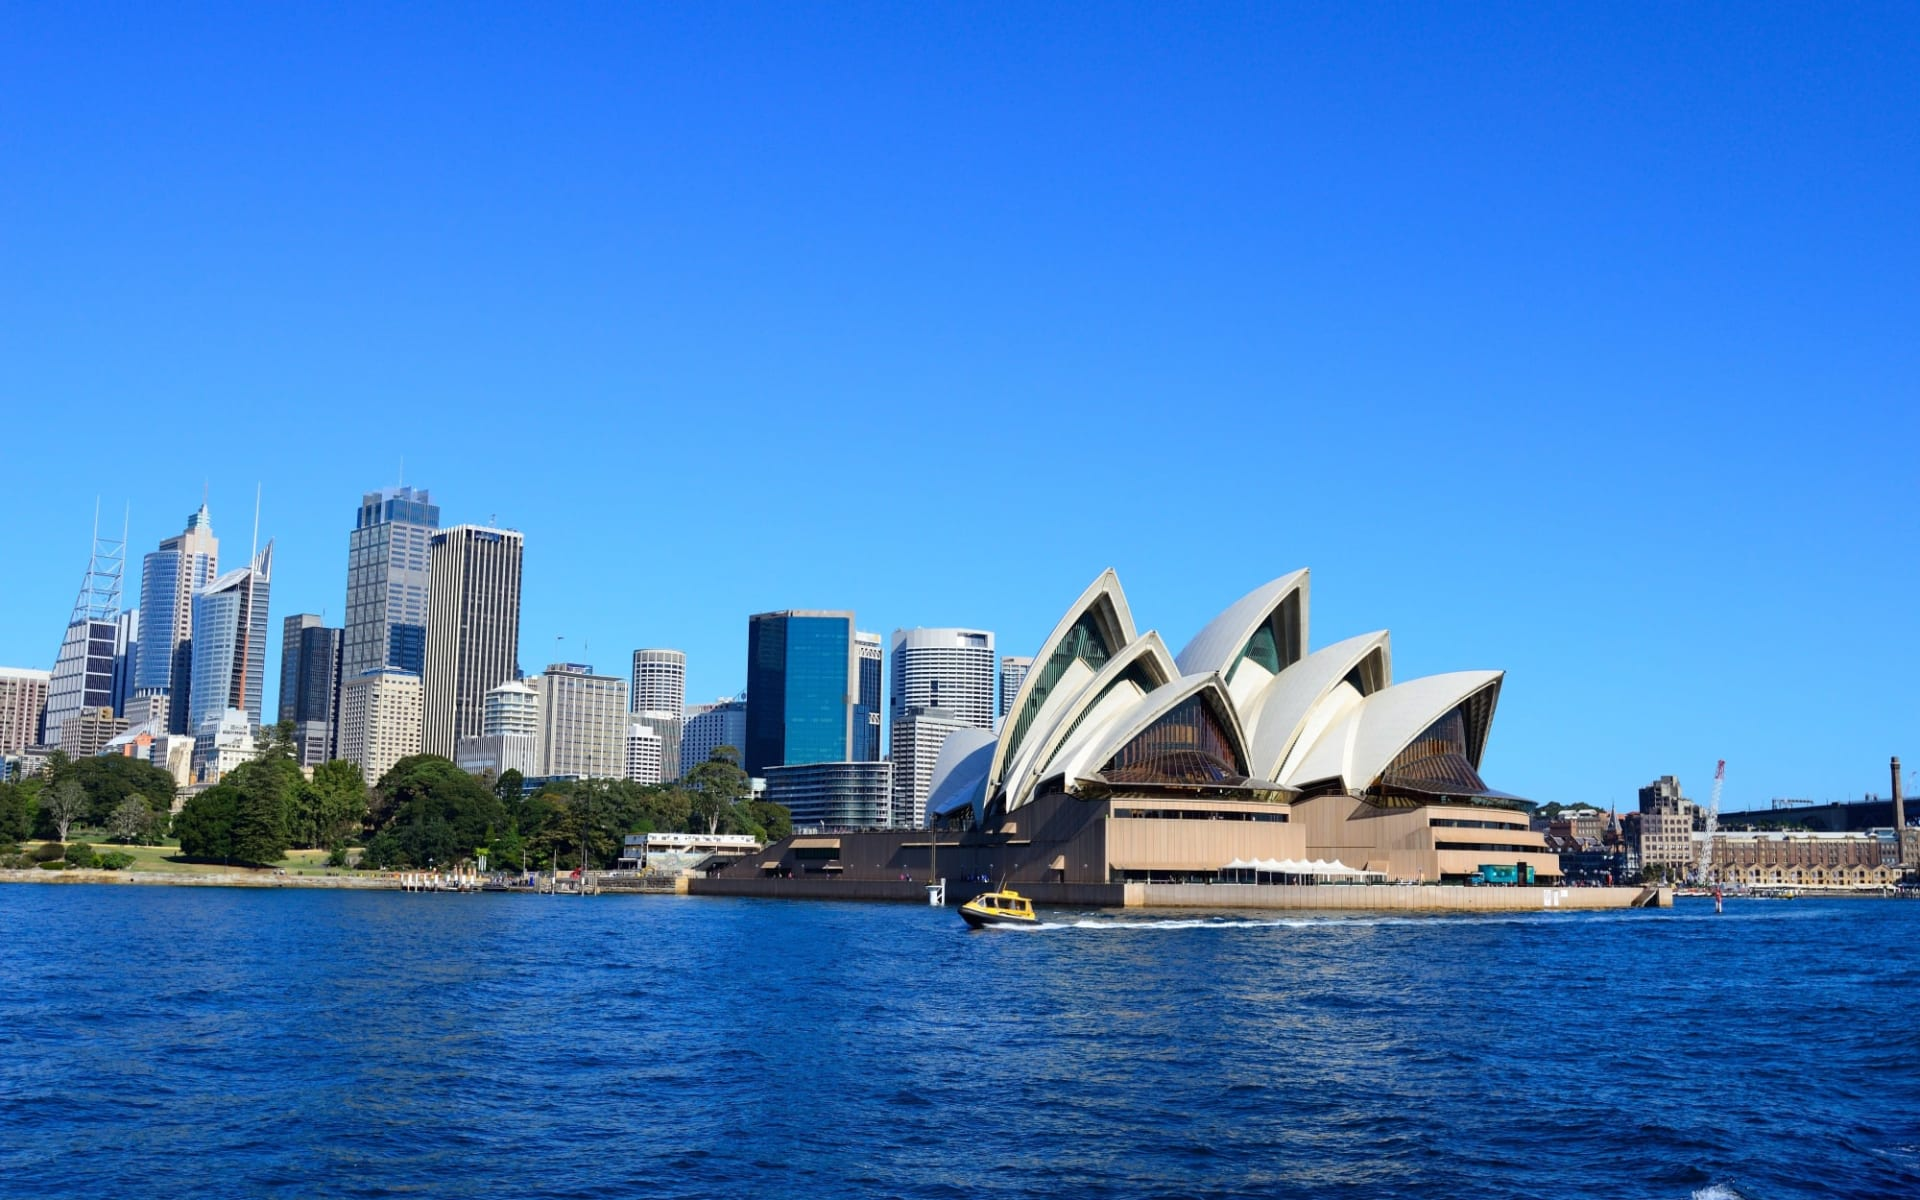 Pacific Coast Touring Route ab Sydney: Australia - New South Wales - Sydney - City Skyline - Shutterstock Jason Ho